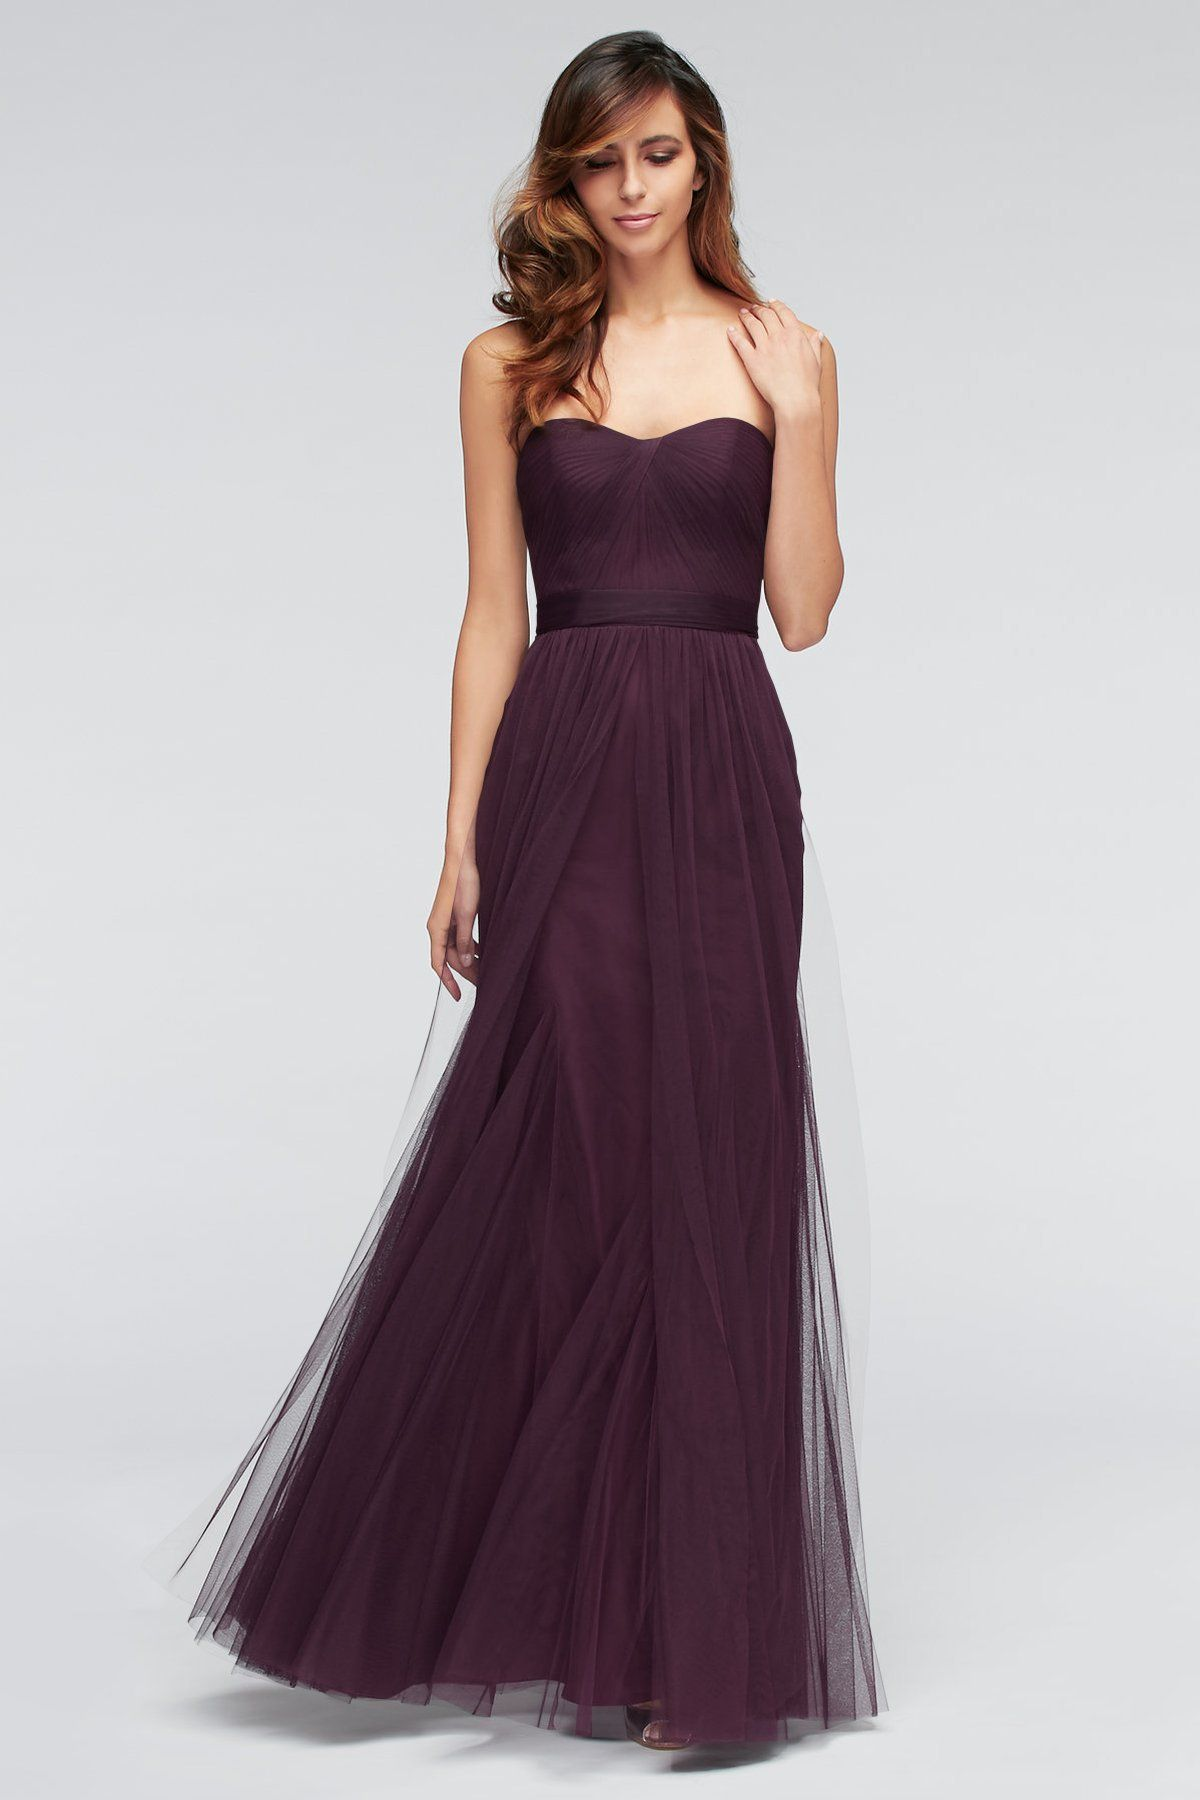 Watters Heath, #1307 Eggplant $250 | dresses we saw in person ...